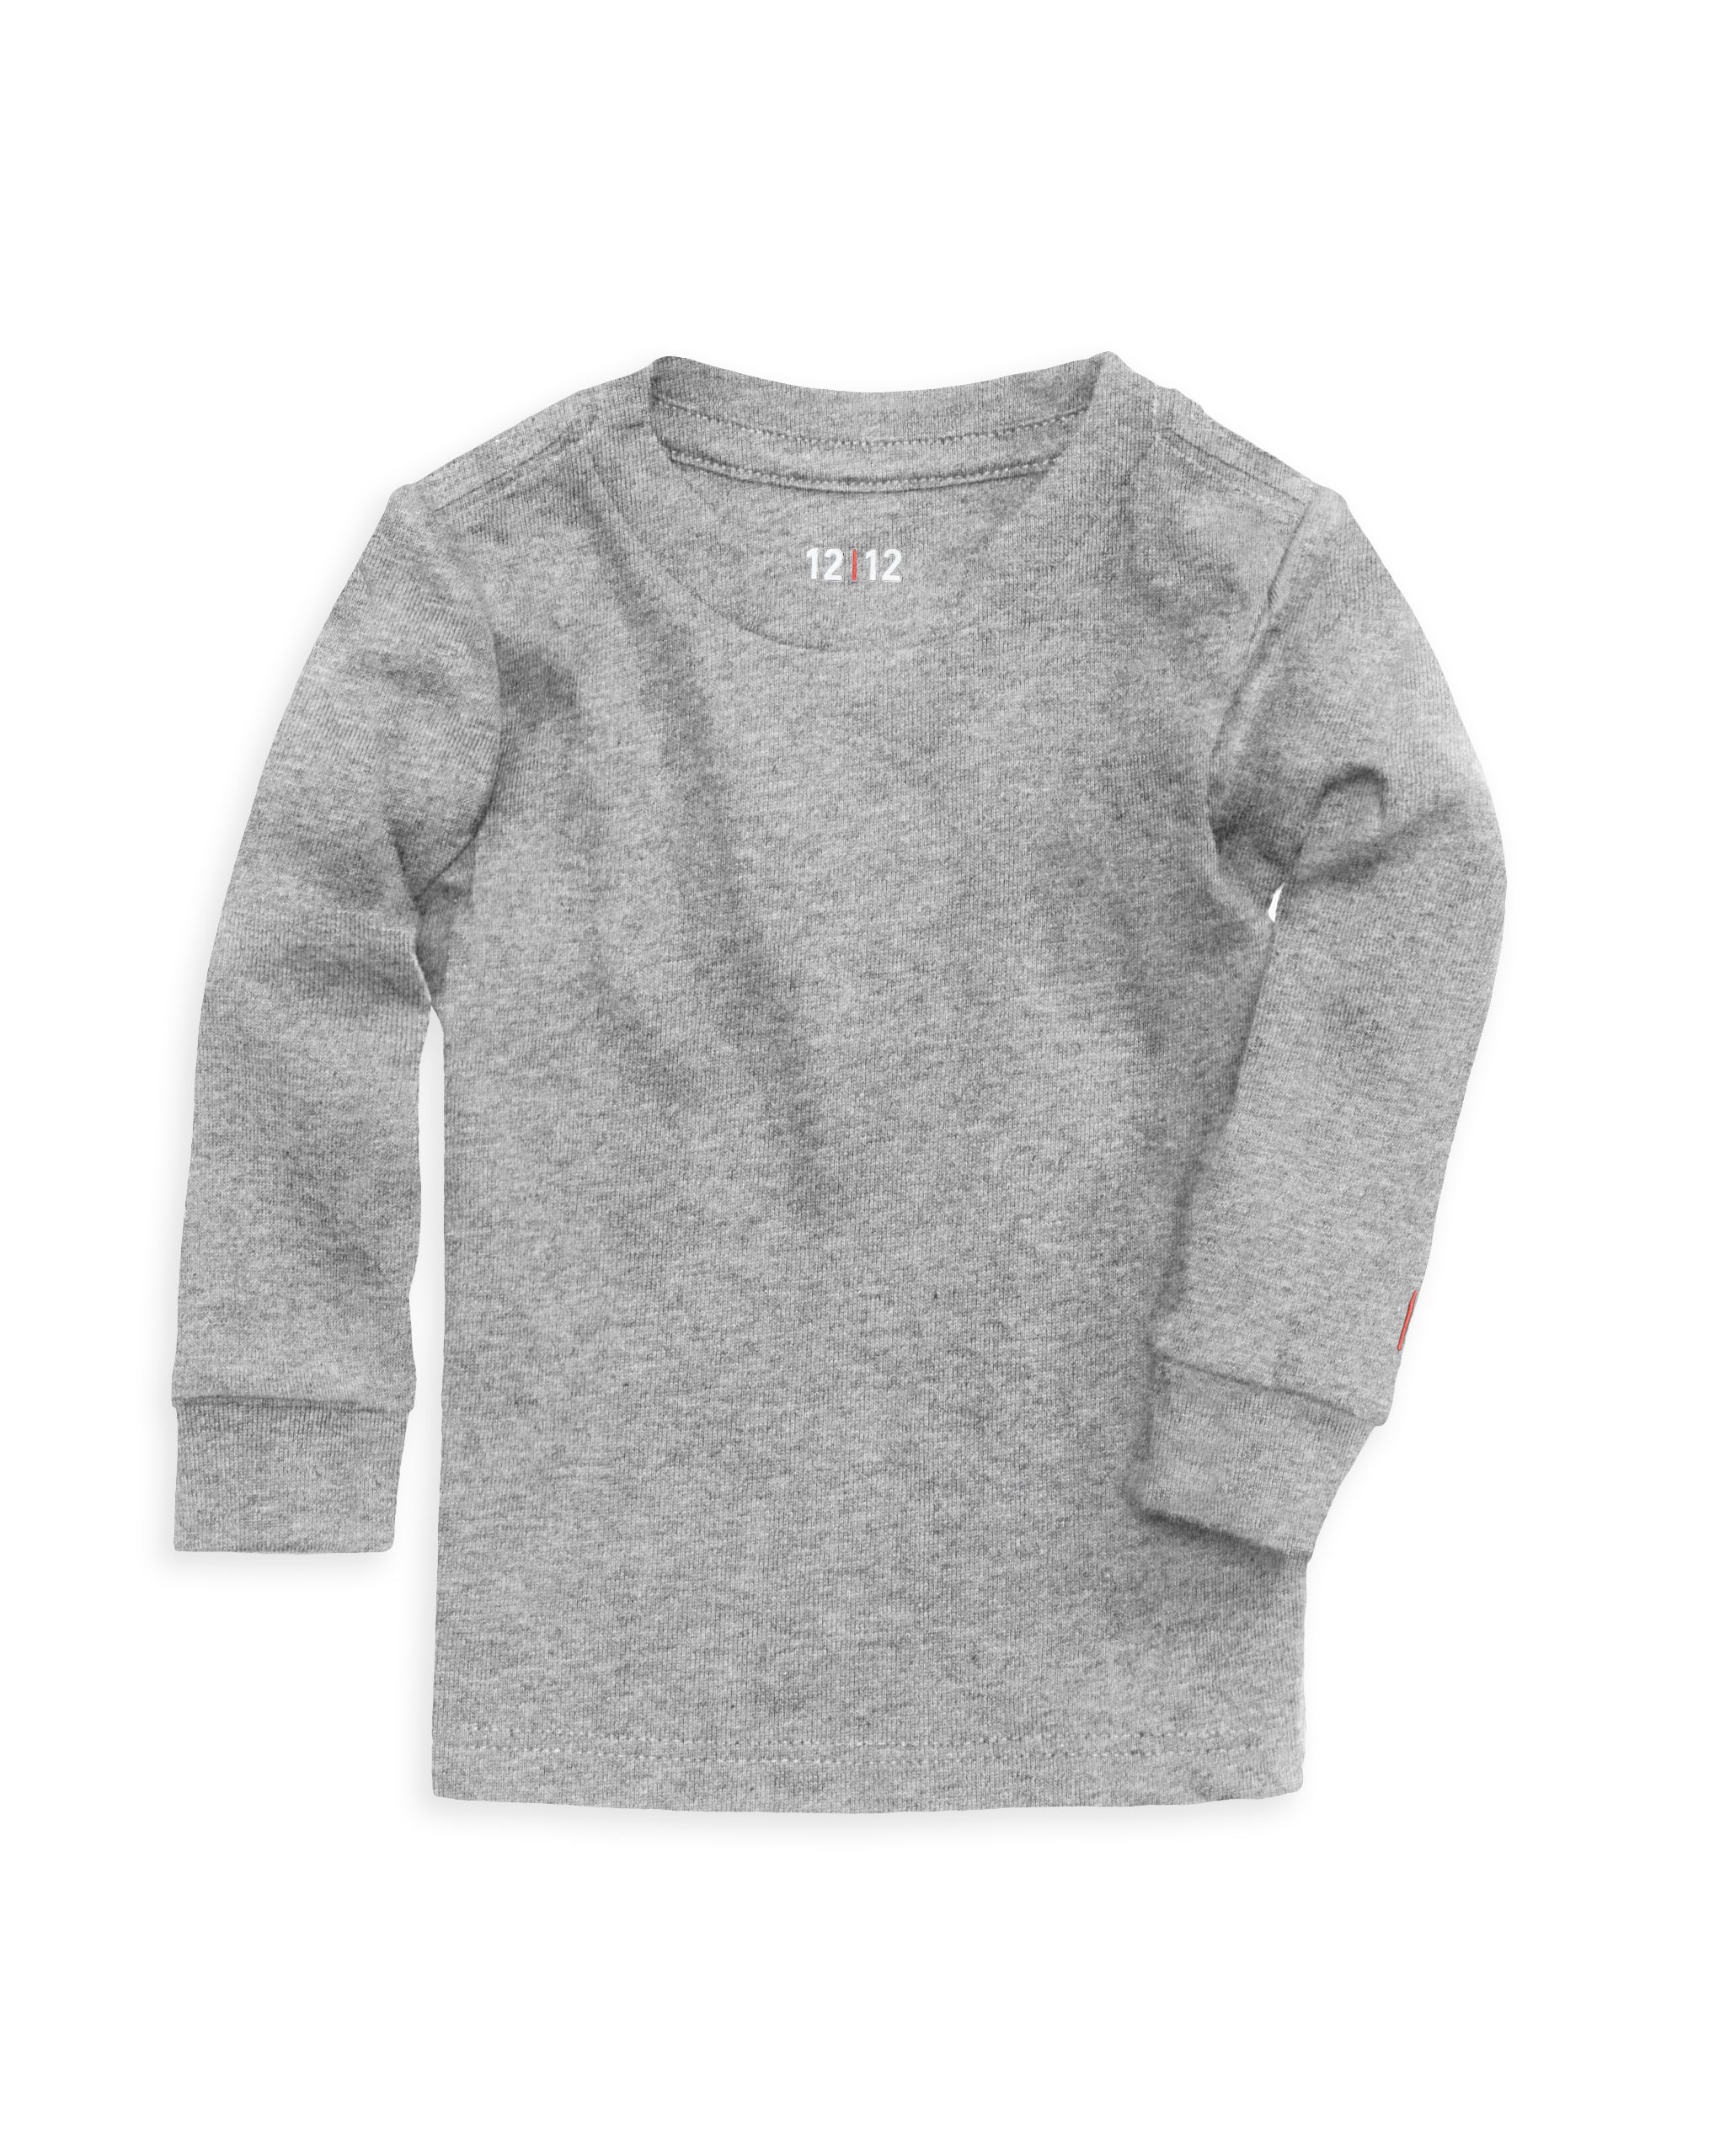 Black t shirt for babies -  100 Organic Cotton Baby Long Sleeve T Shirt In Heather Grey